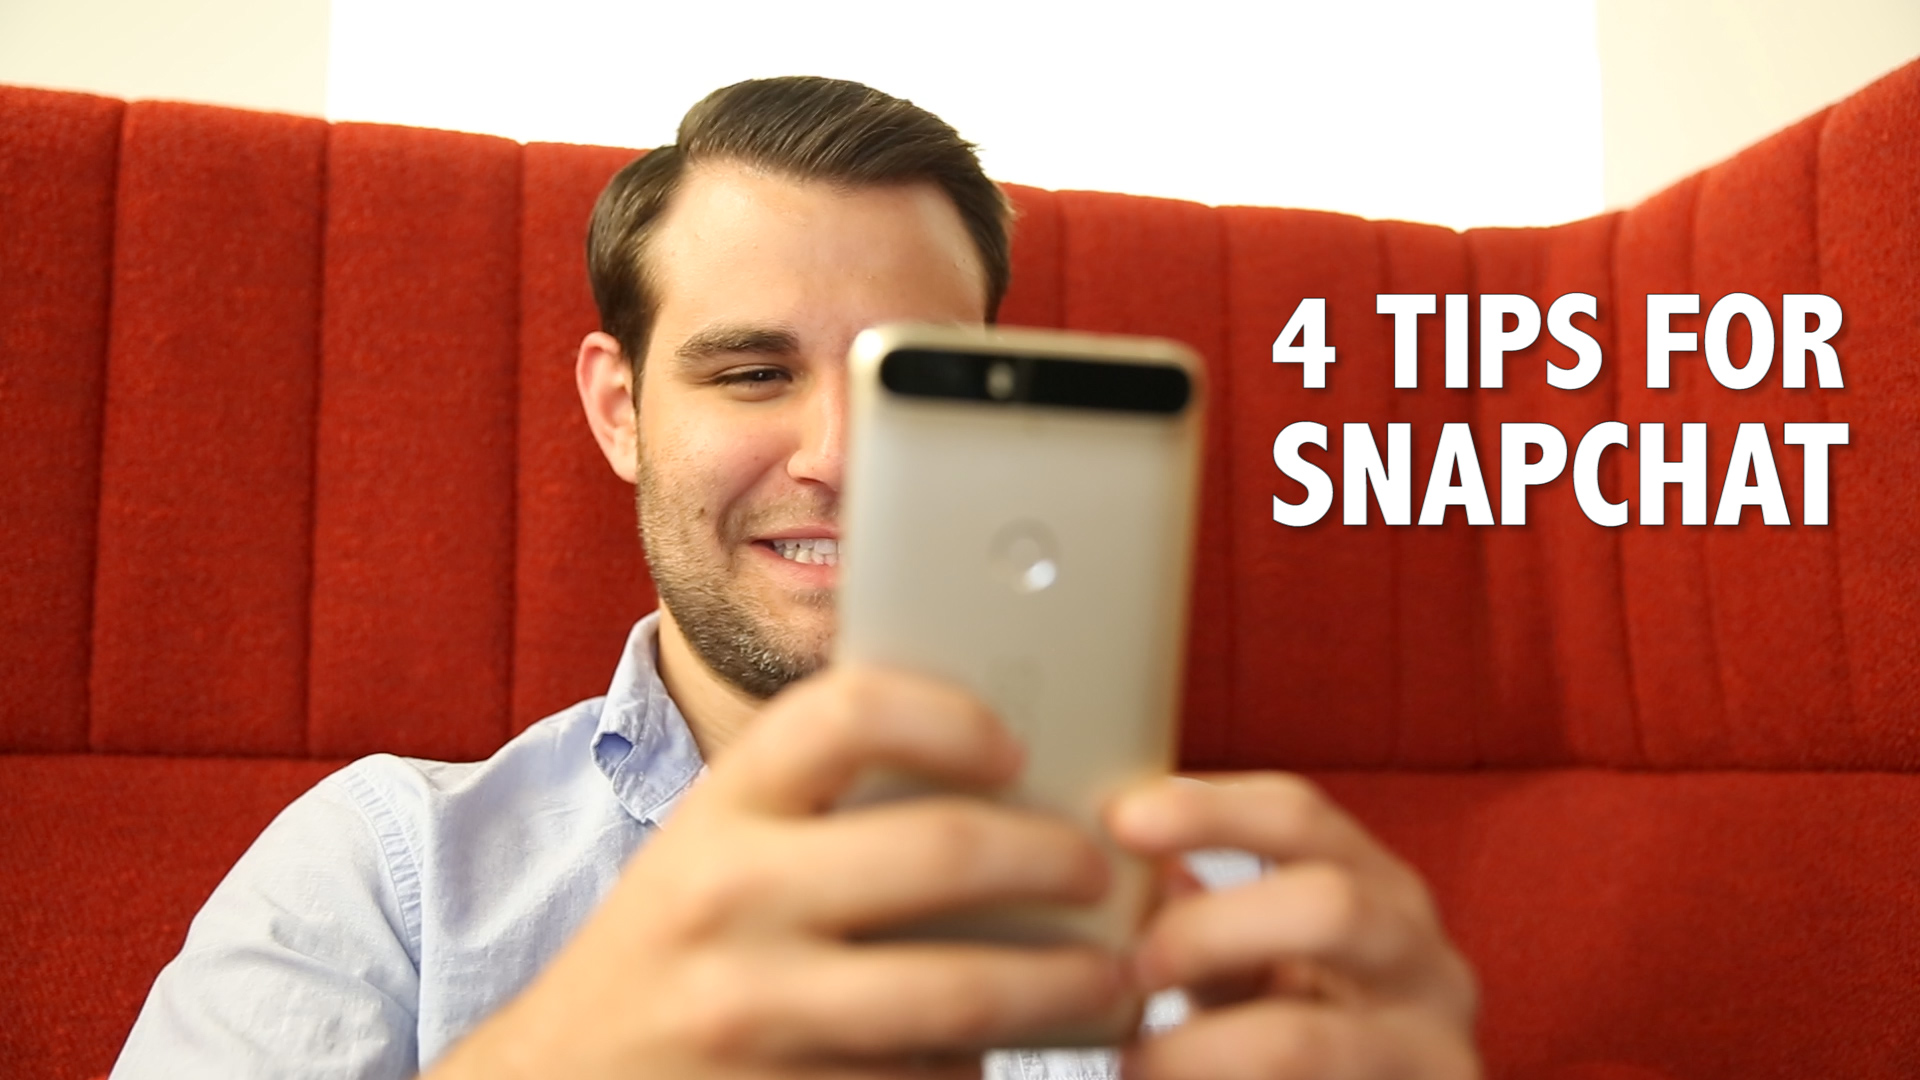 Video: Four tips to make you a Snapchat power user